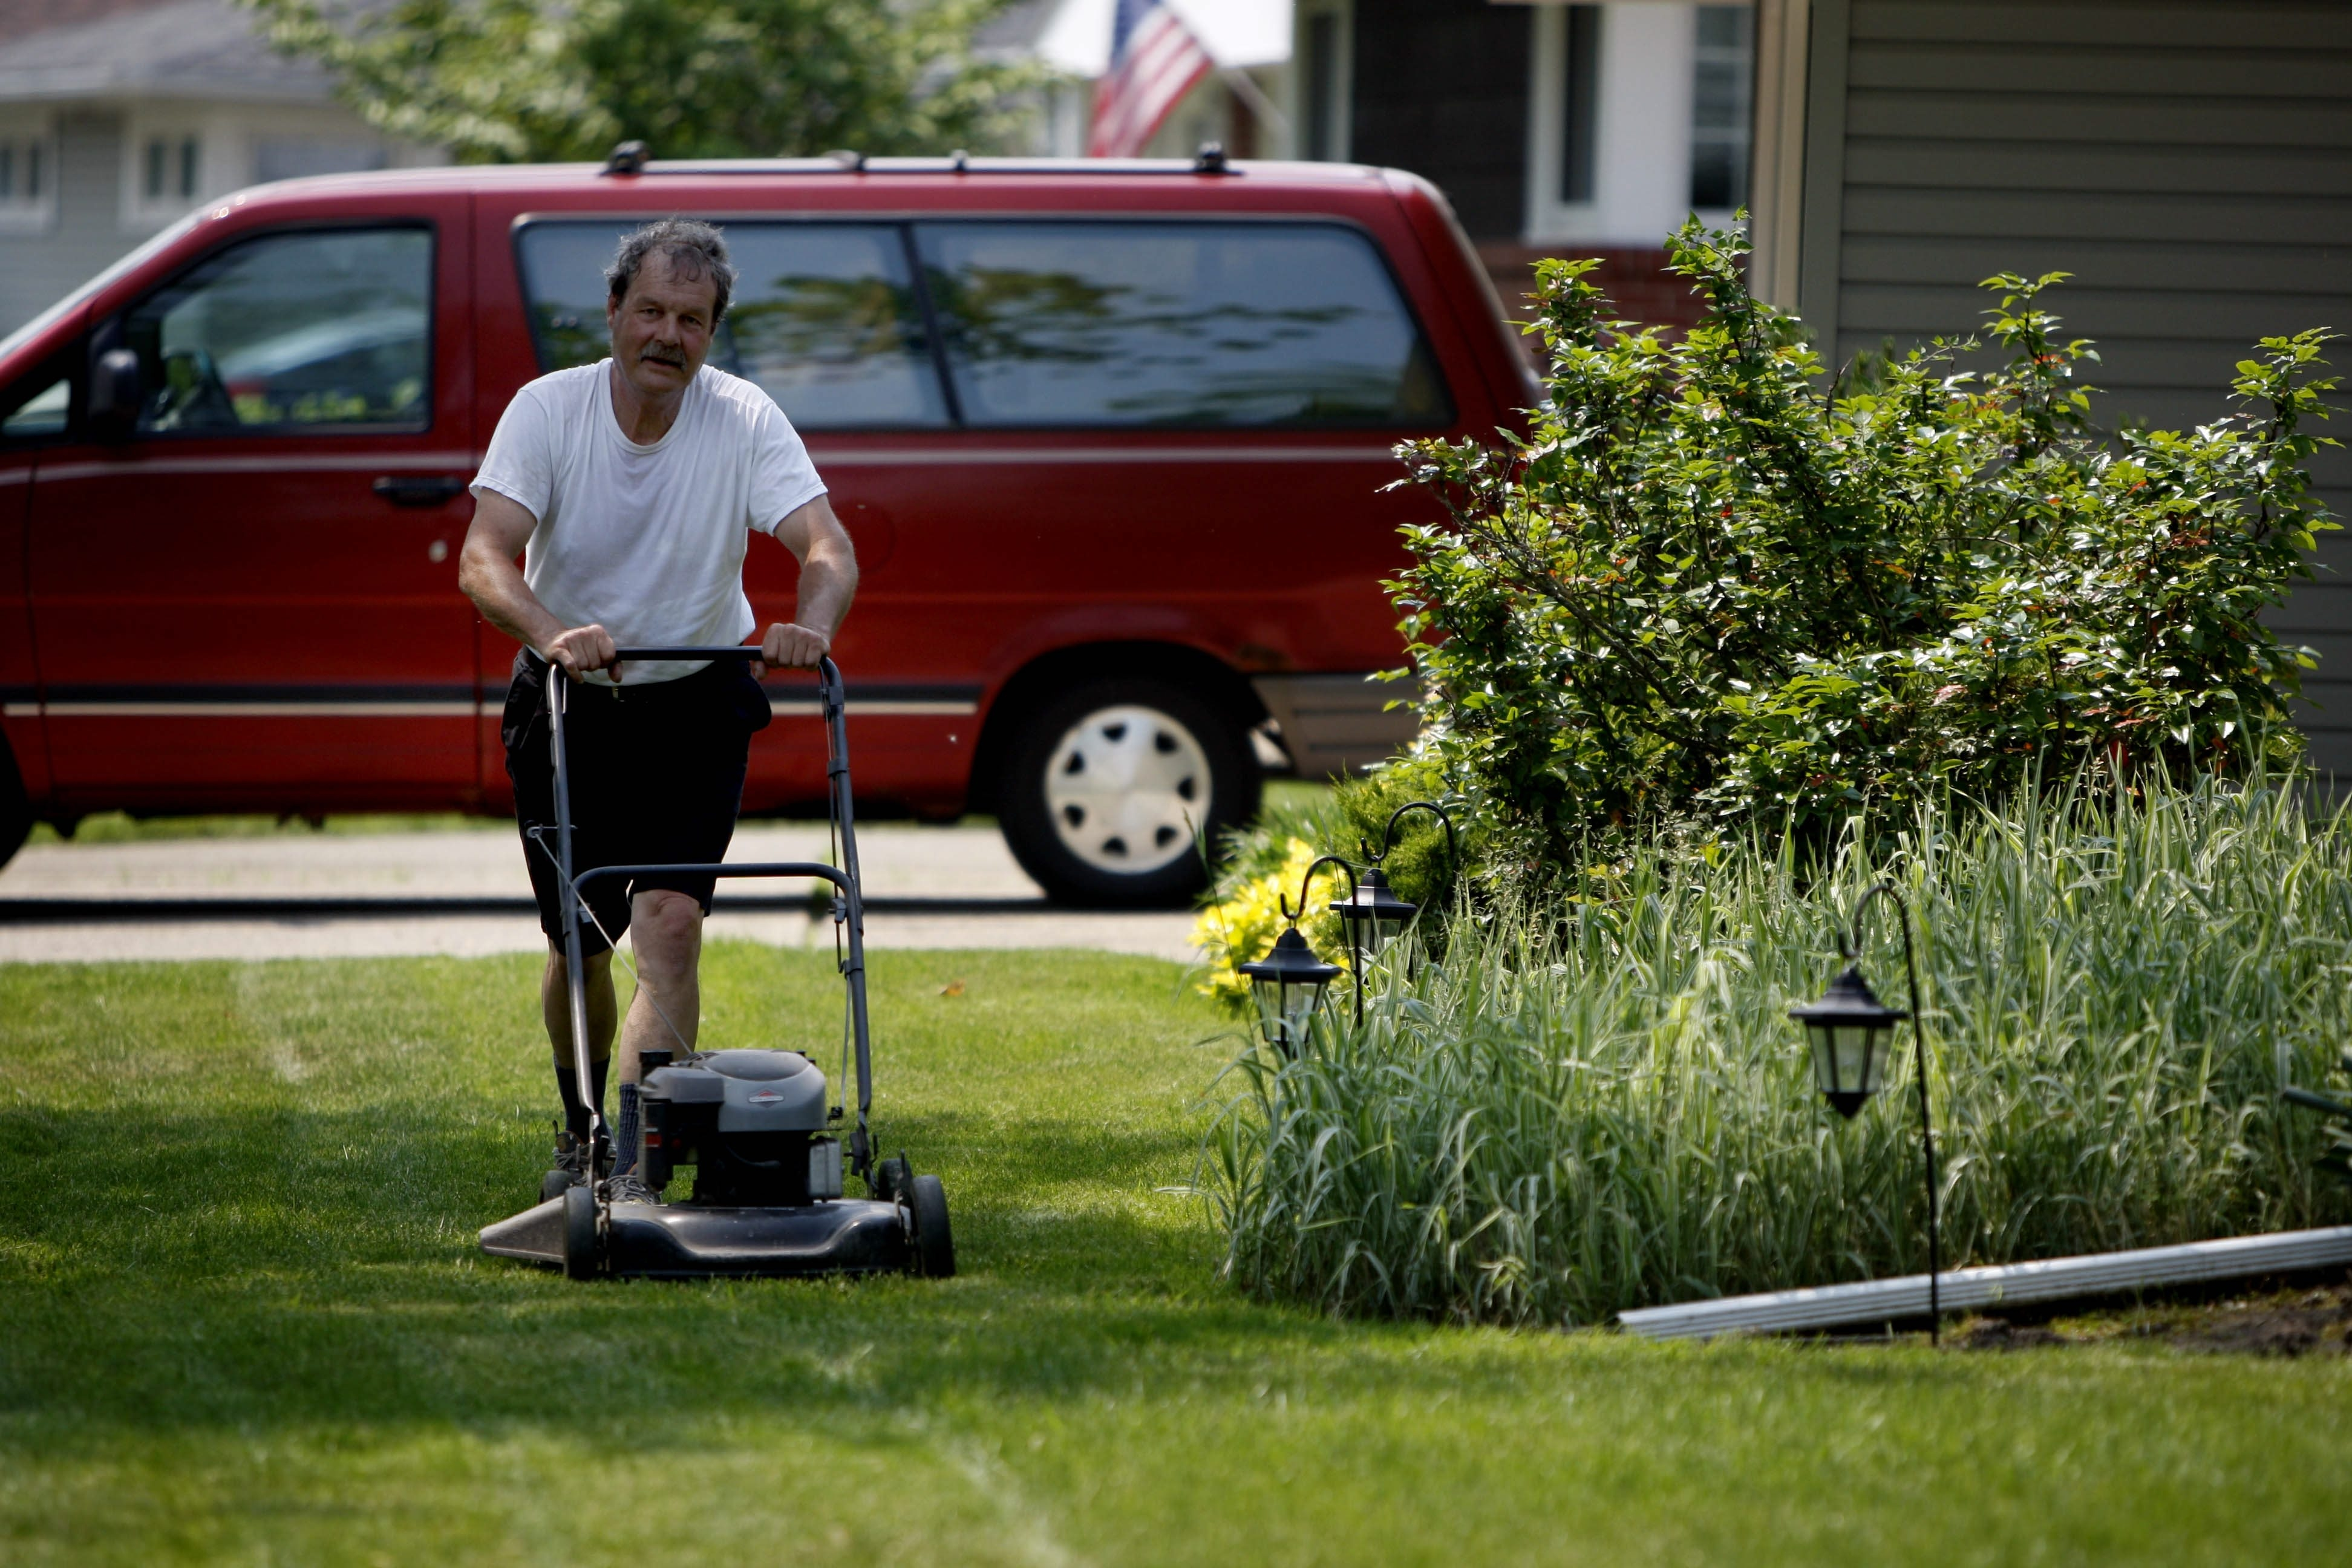 A spring tuneup can keep your lawn mower running smoothly and help it last longer, without breaking your budget.